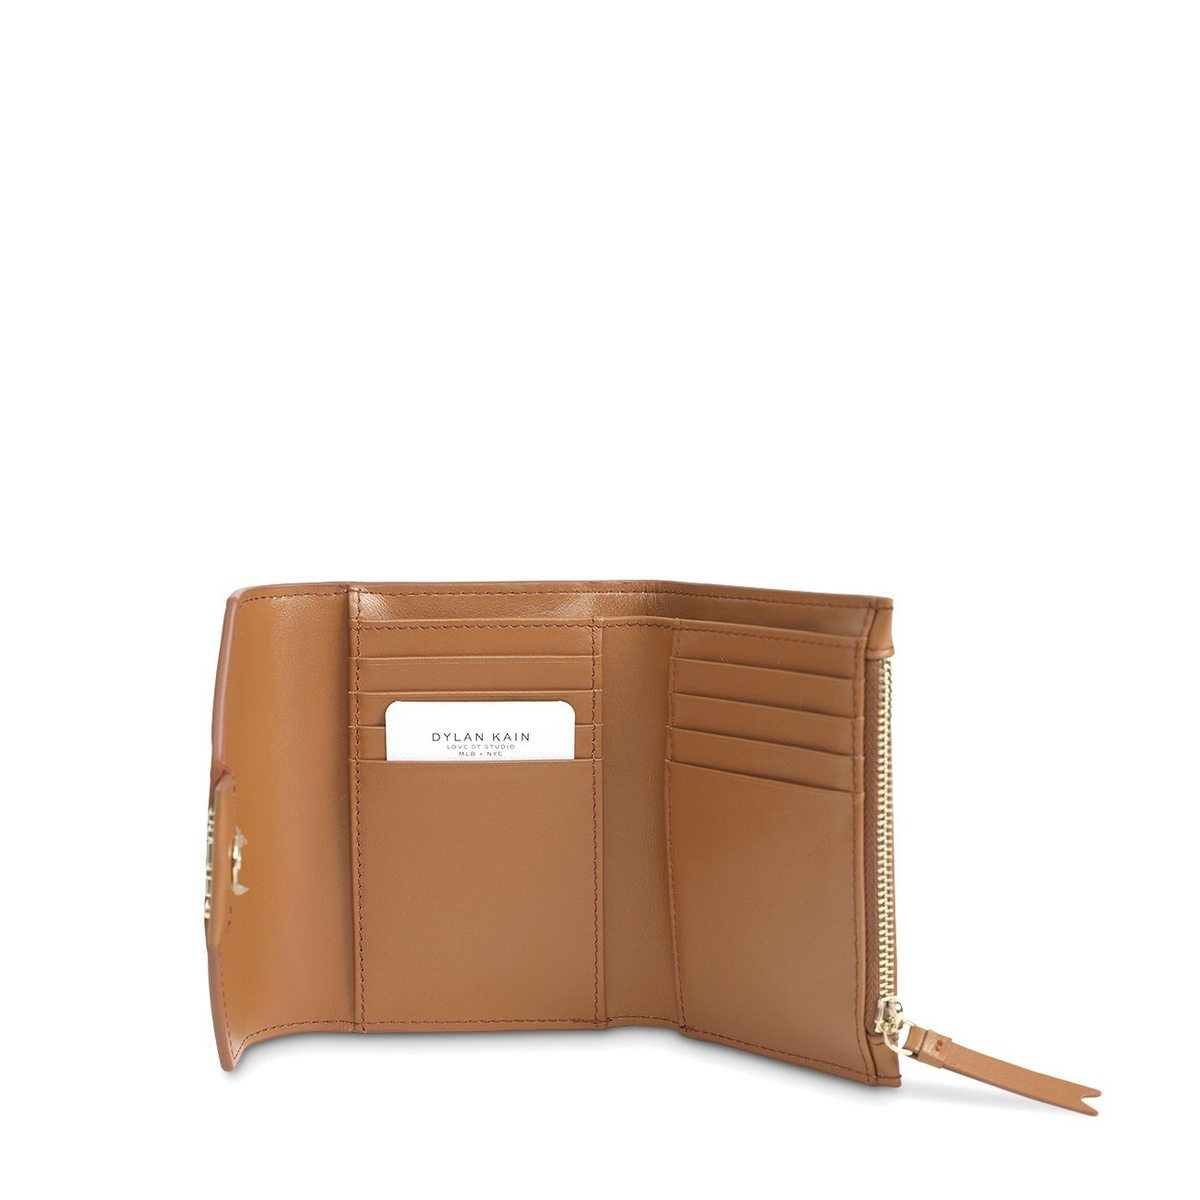 The Helena Wallet